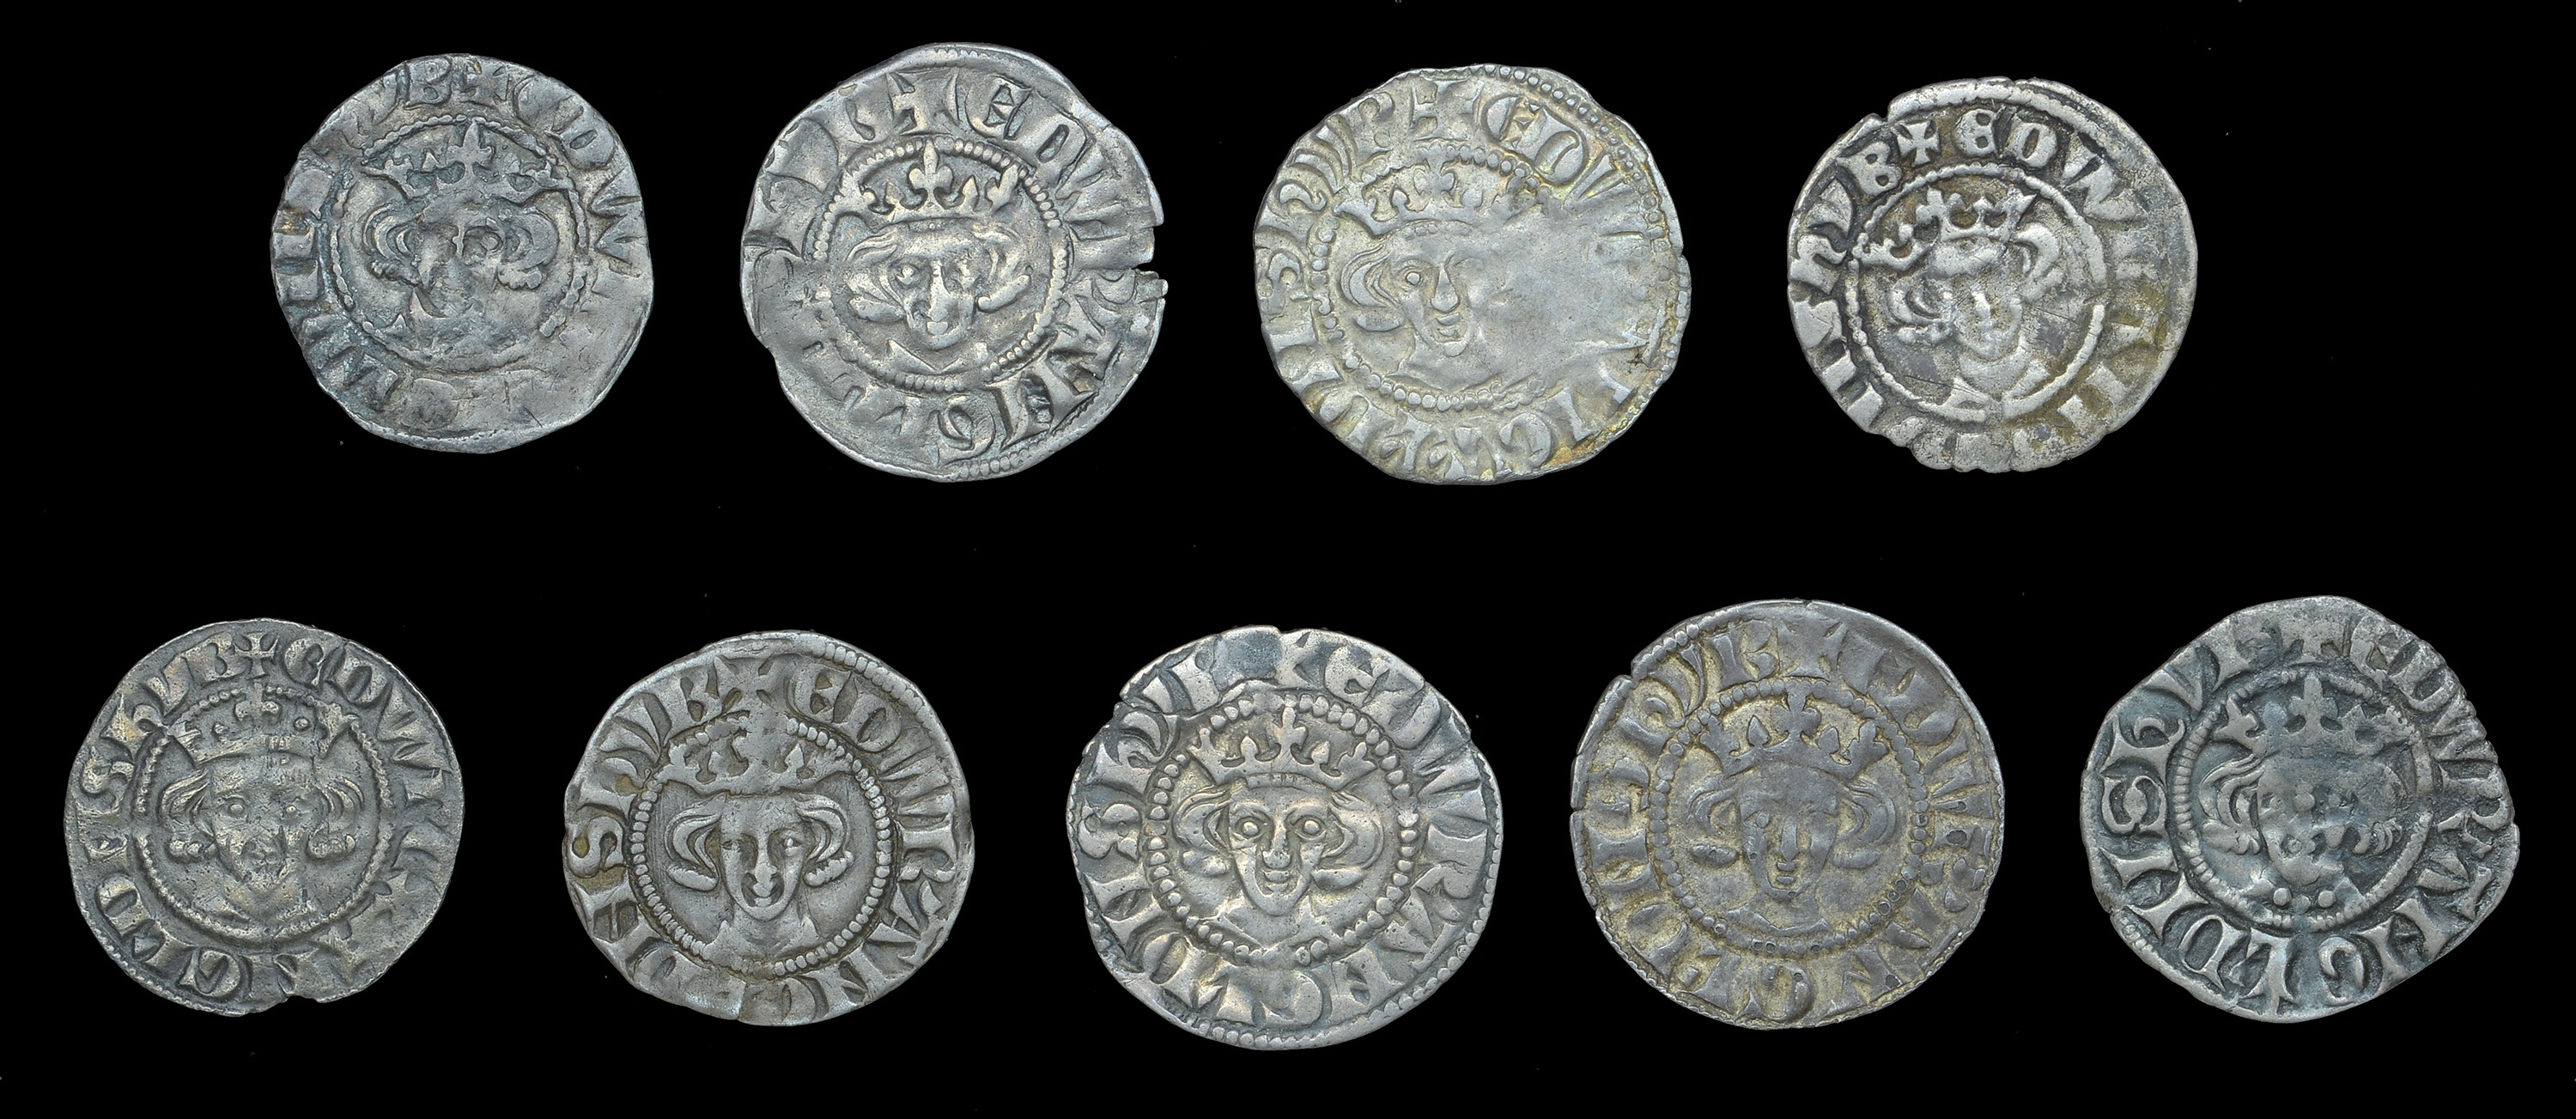 Lot 48 - English Coins from the Collection of the Late Dr John Hulett (Part IX)